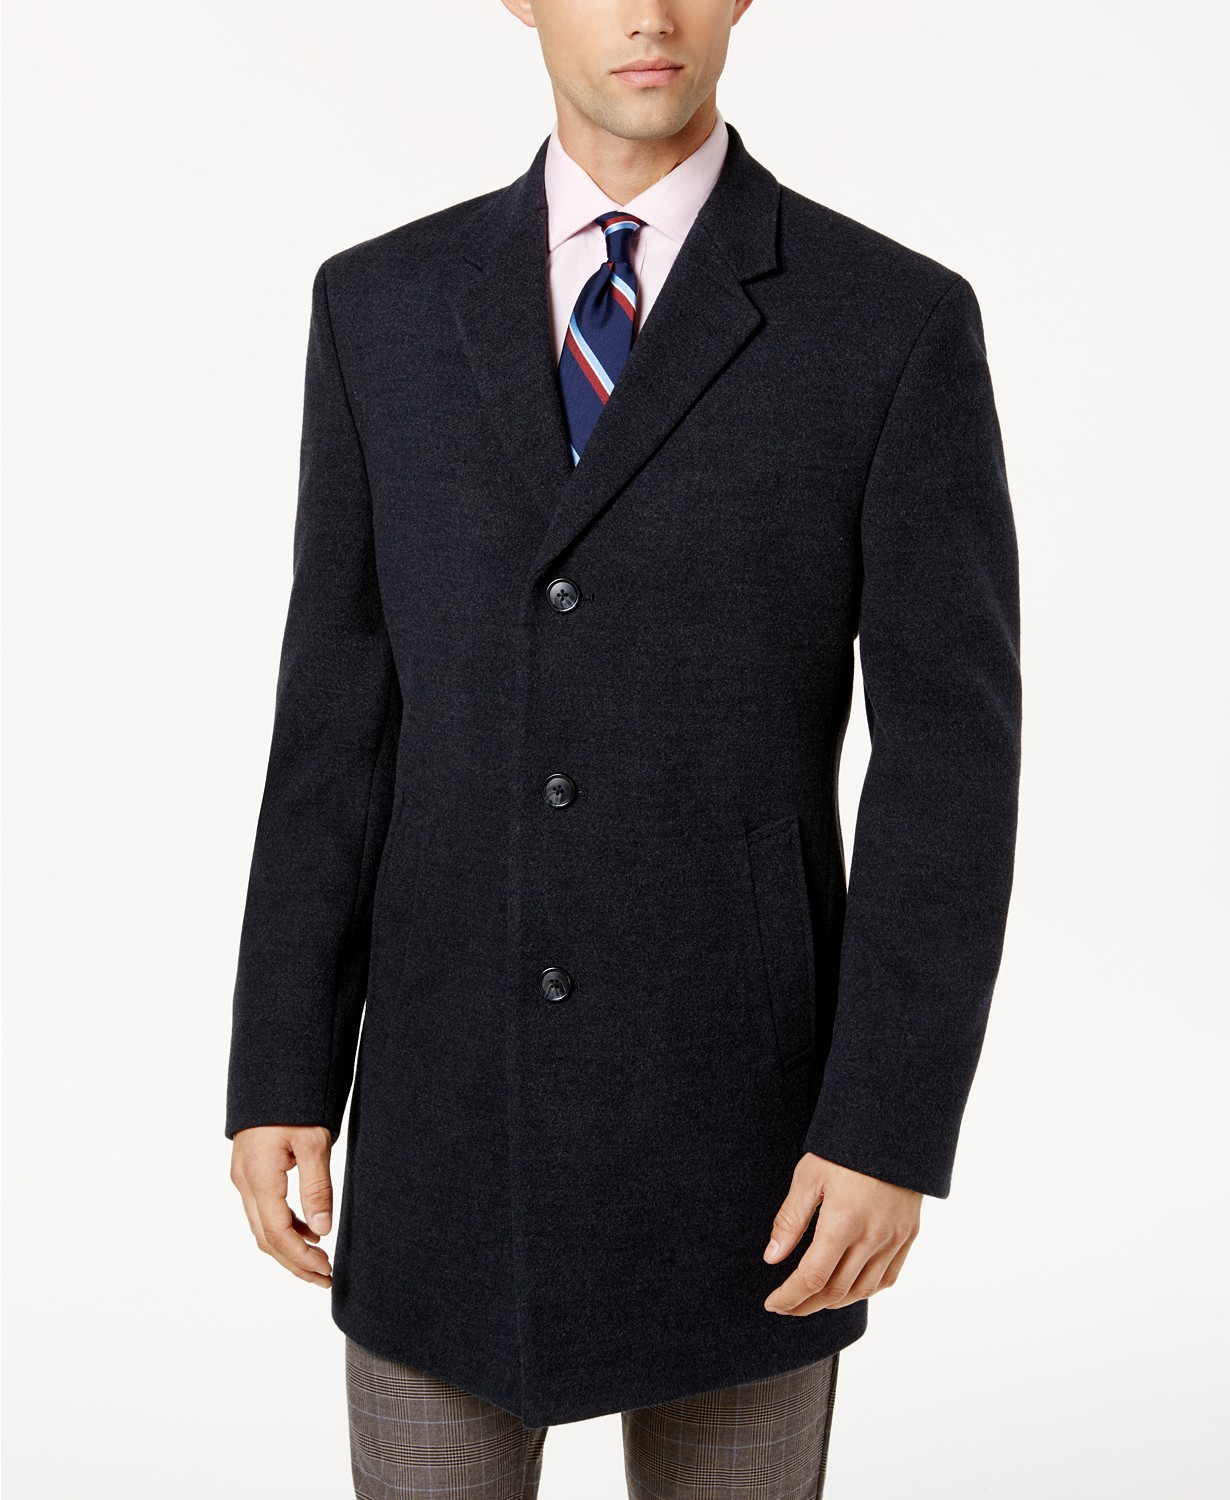 2-Pack Tommy Hilfiger Beckham Mens Modern-Fit Overcoat (navy/charcoal)